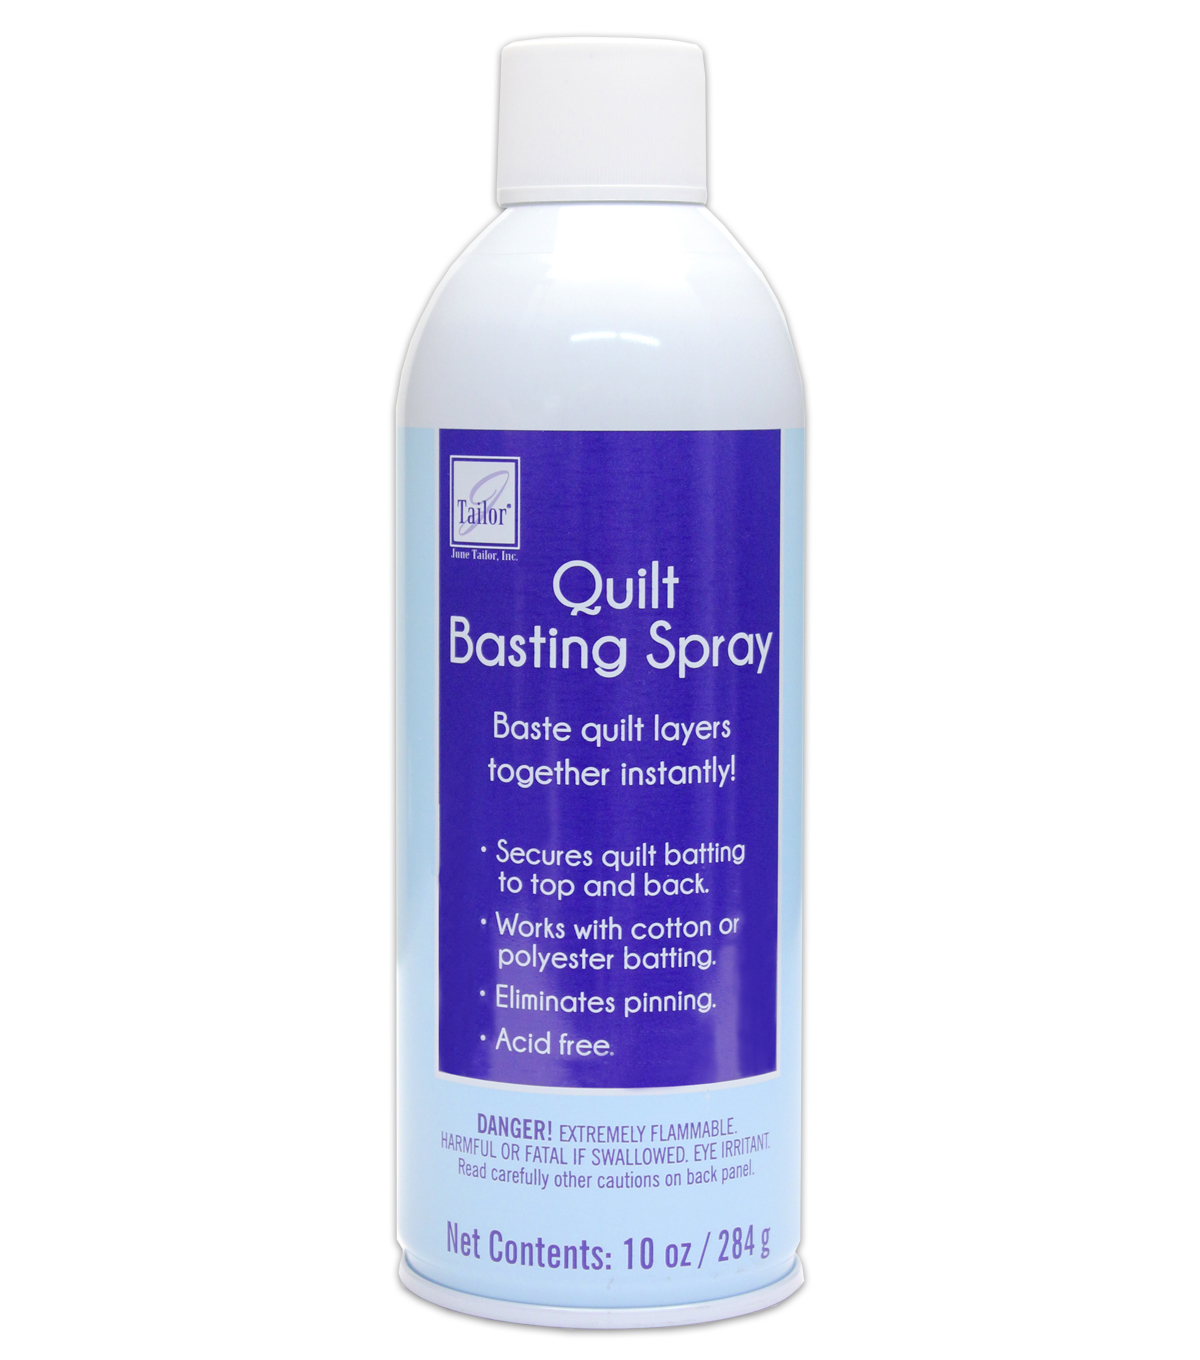 June Tailor® 9.95 oz. Quilt Basting Spray